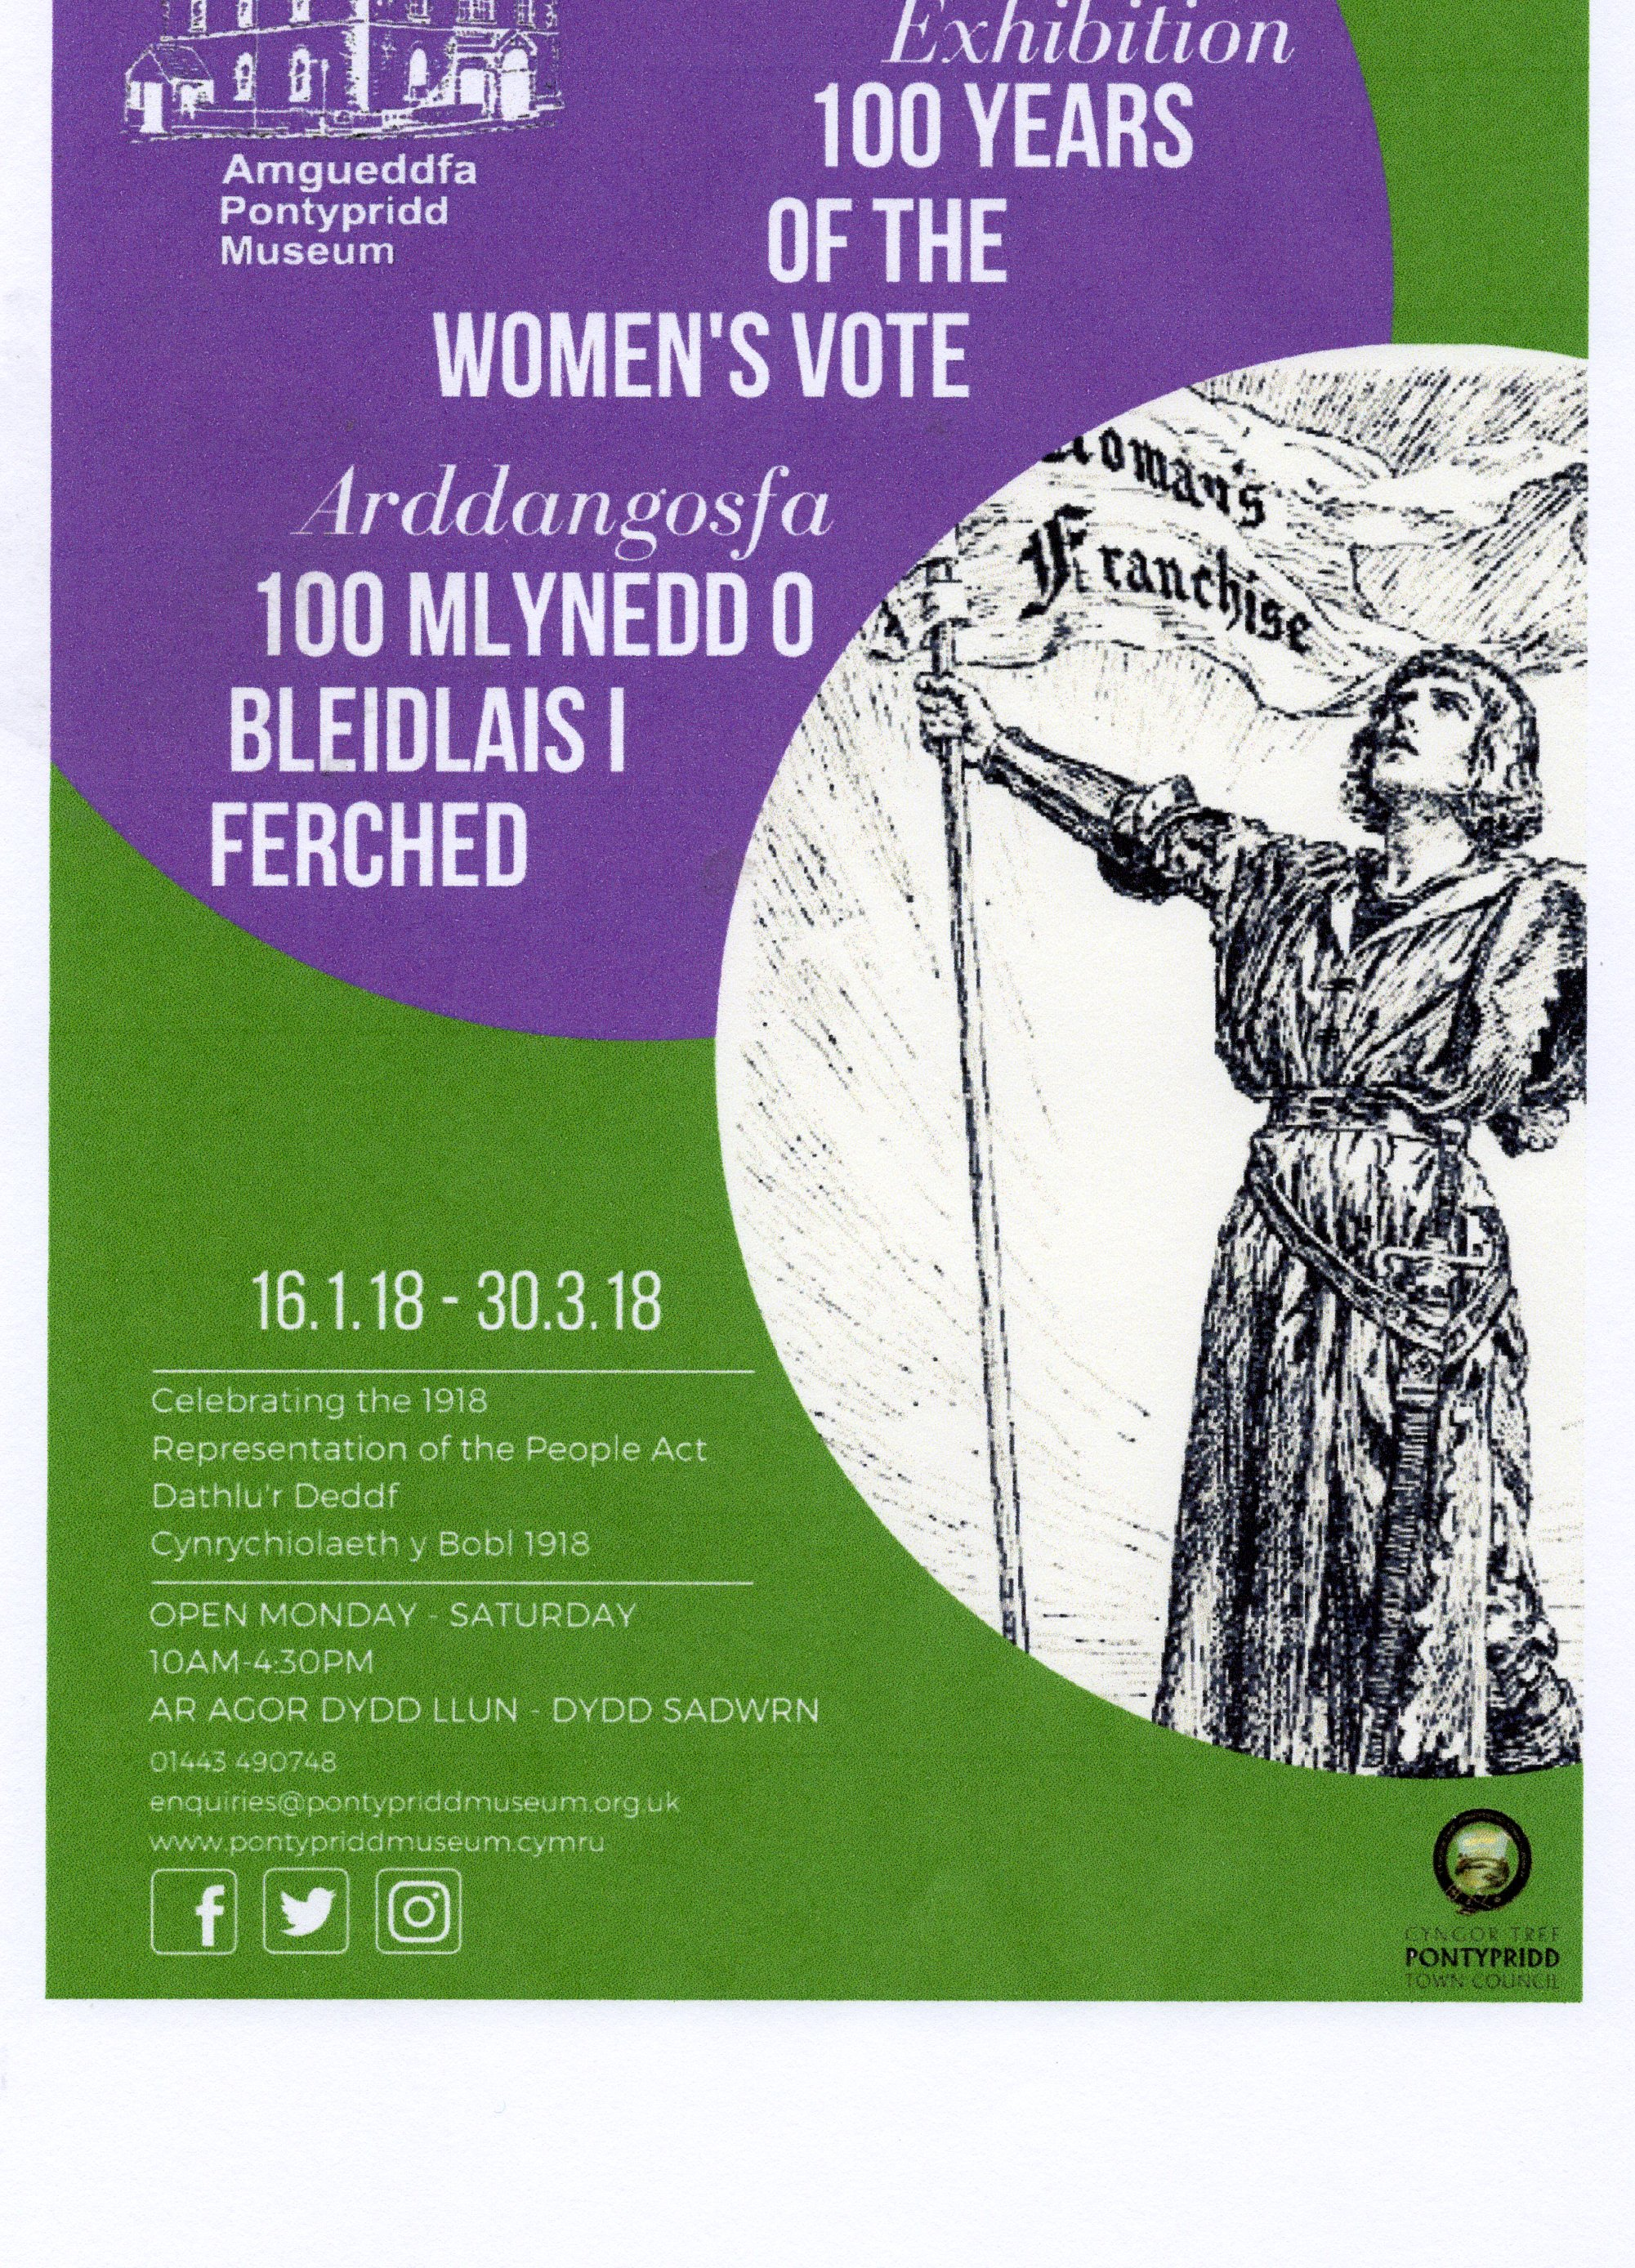 Exhibition: 100 years of the women's vote